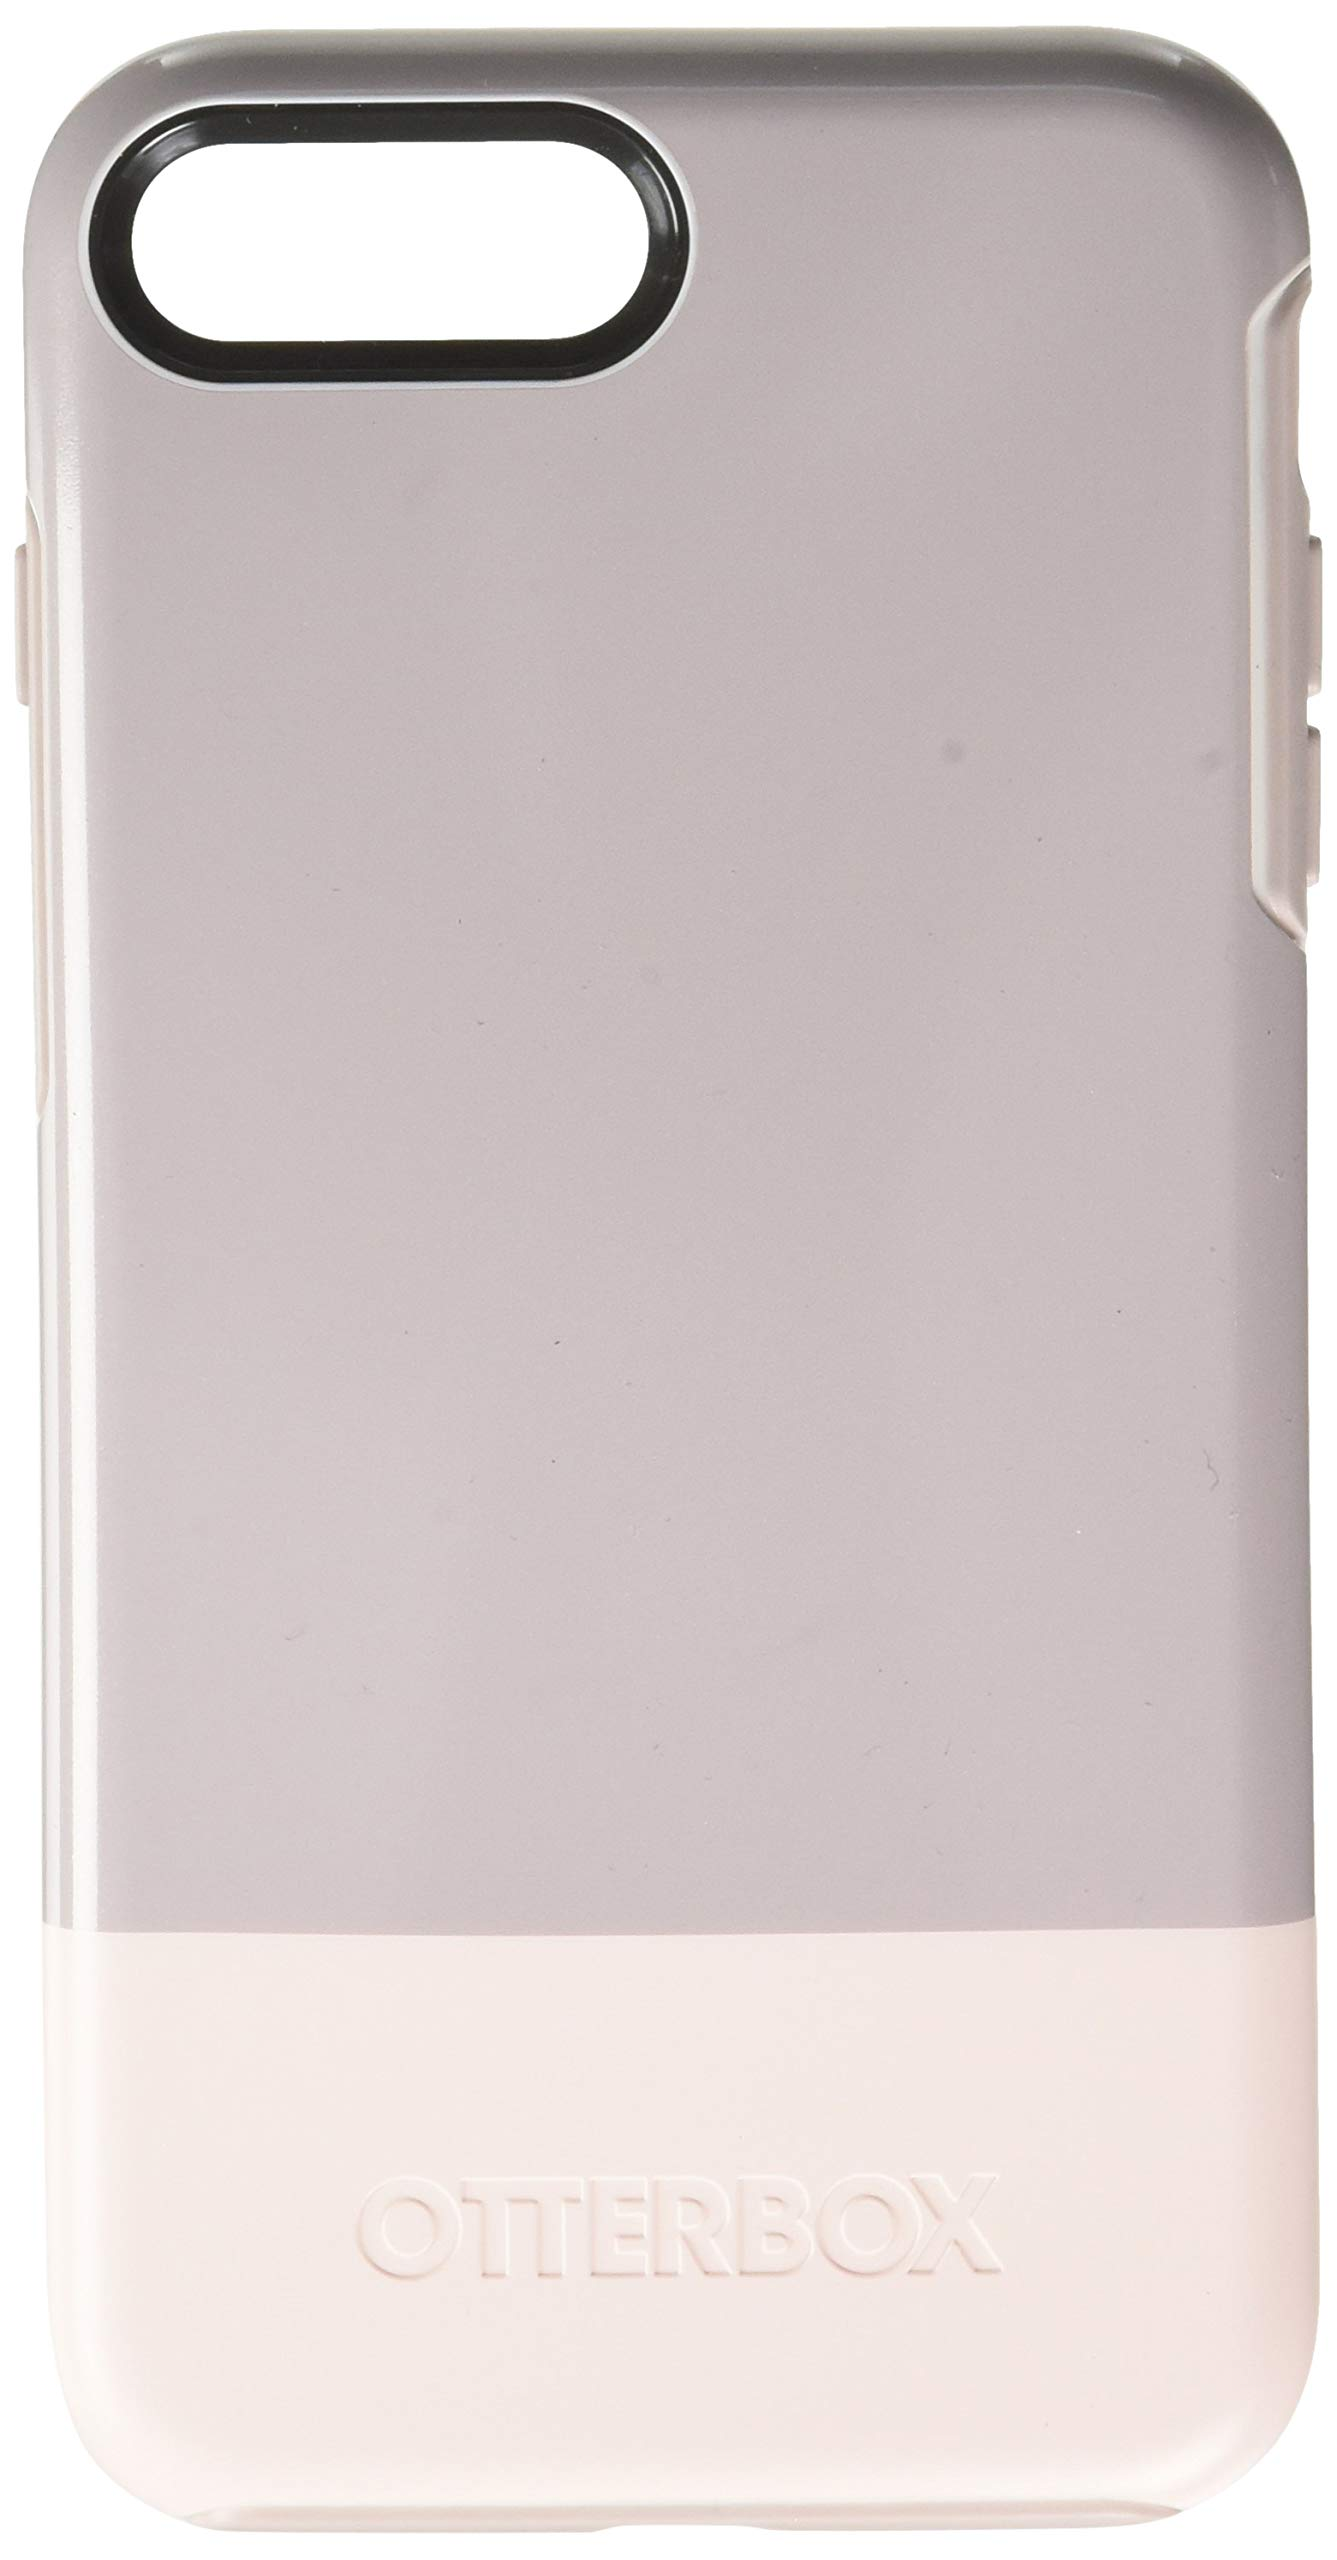 OtterBox SYMMETRY SERIES Case for iPhone 8 Plus & iPhone 7 Plus (ONLY) - Retail Packaging - SKINNY DIP (WHTE/PALE MAUVE/SKINNY DIP)